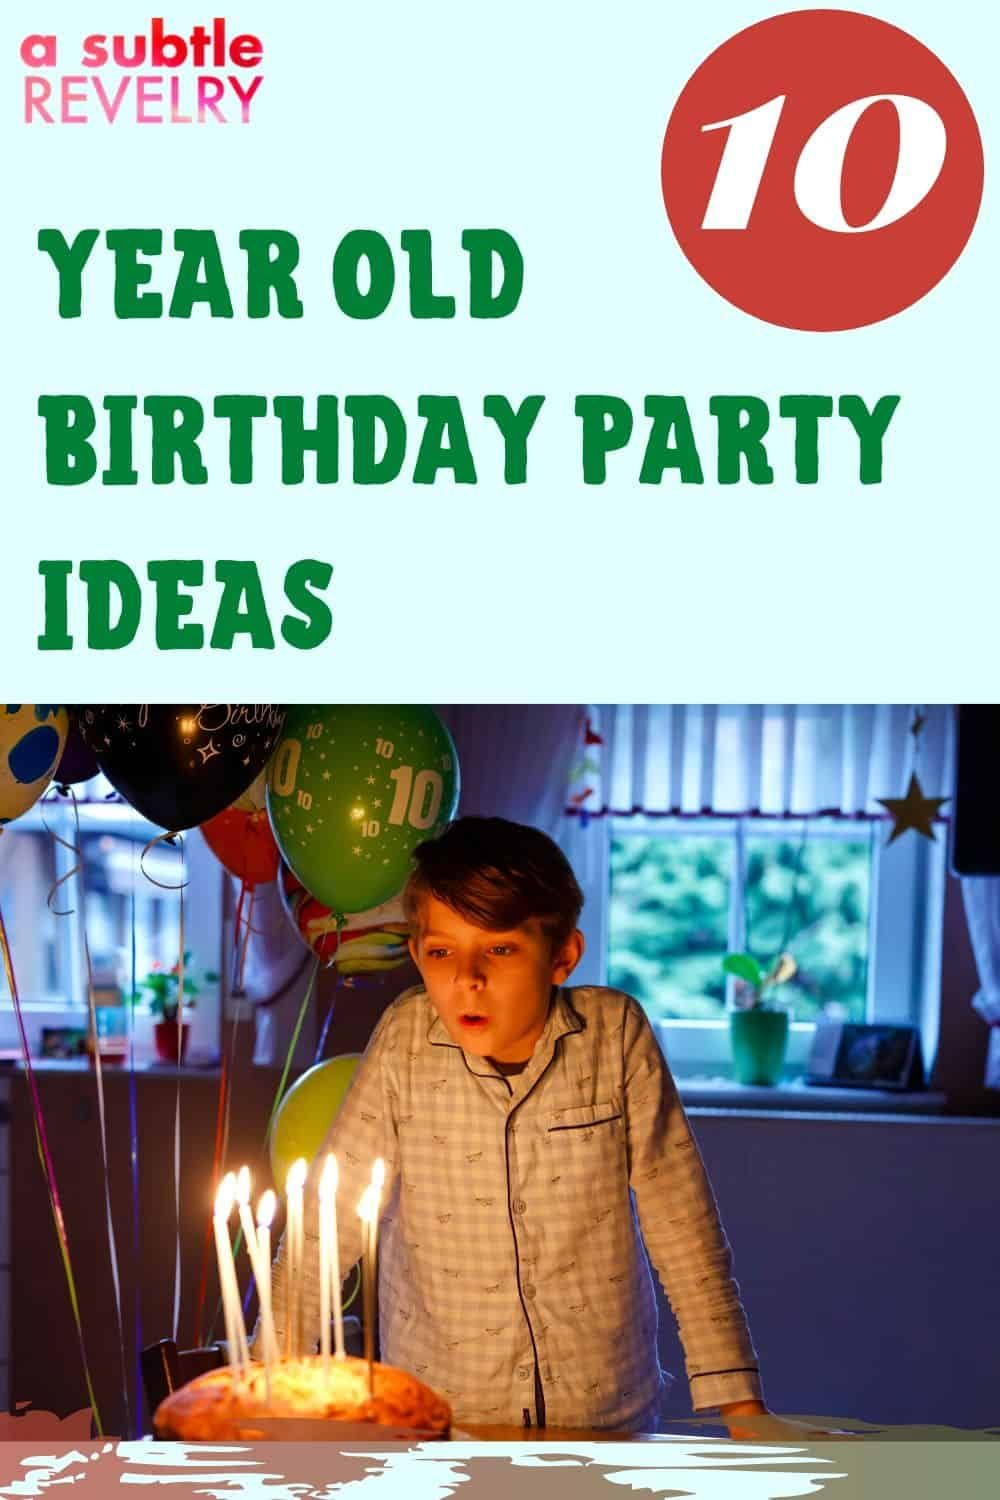 10th Birthday Party Ideas For Ten Year Old Boys And Girls Birthday Party For Teens 12th Birthday Party Ideas 14th Birthday Party Ideas